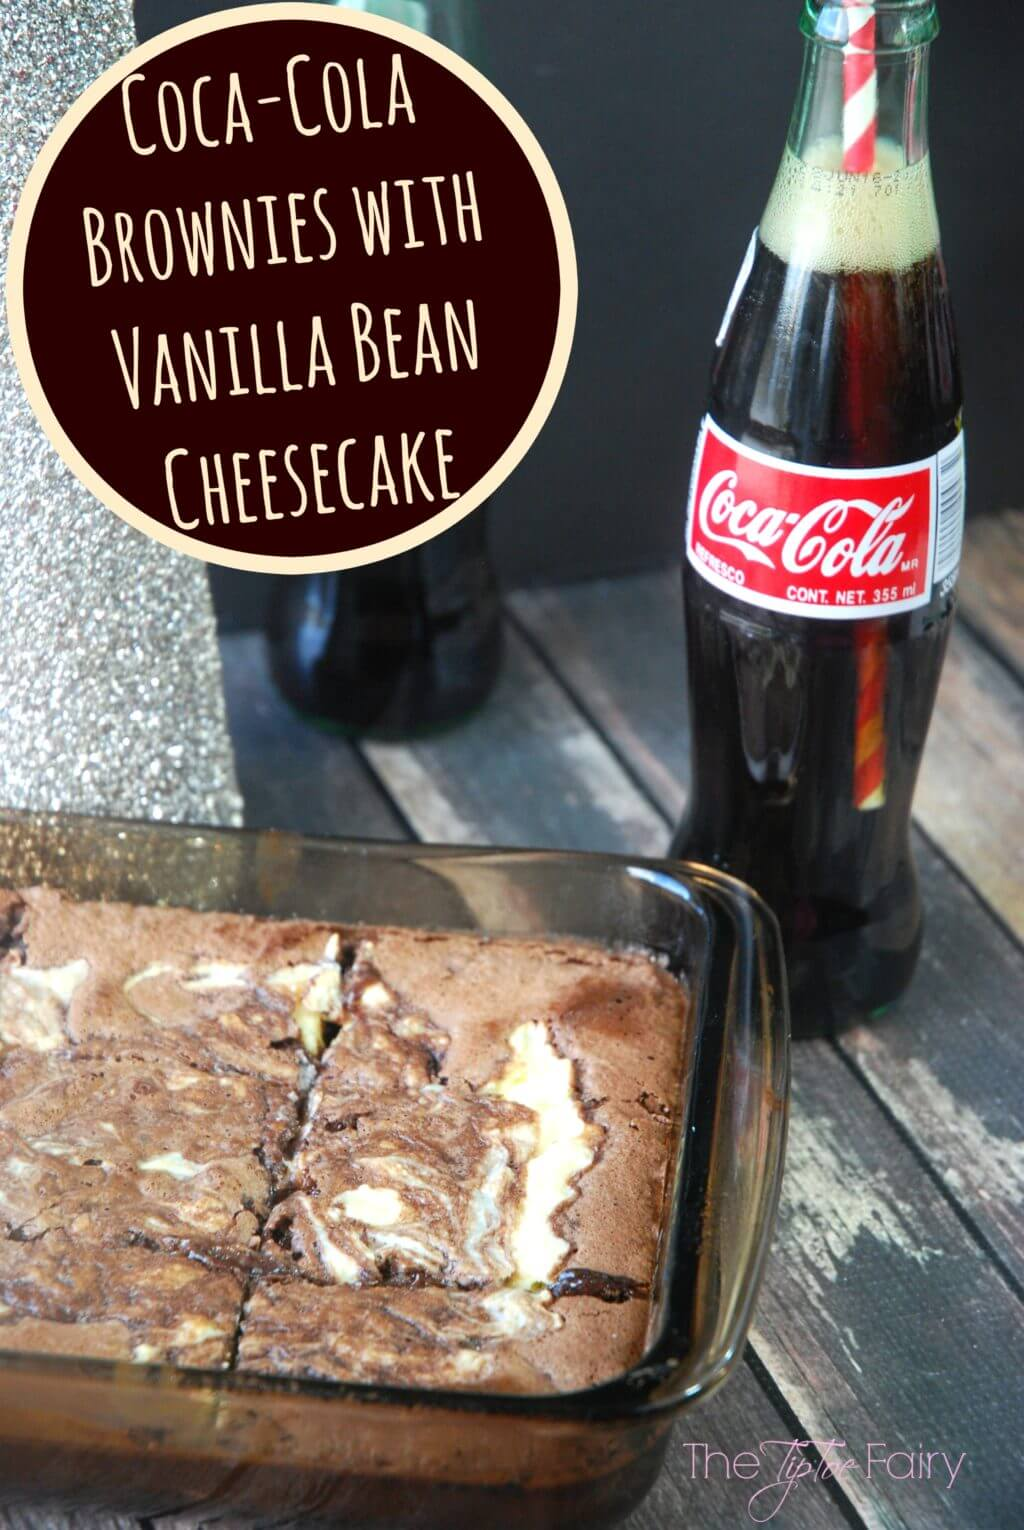 Coca-Cola Brownies with Vanilla Bean Cheesecake #ad #ShareHolidayJoy | The TipToe Fairy